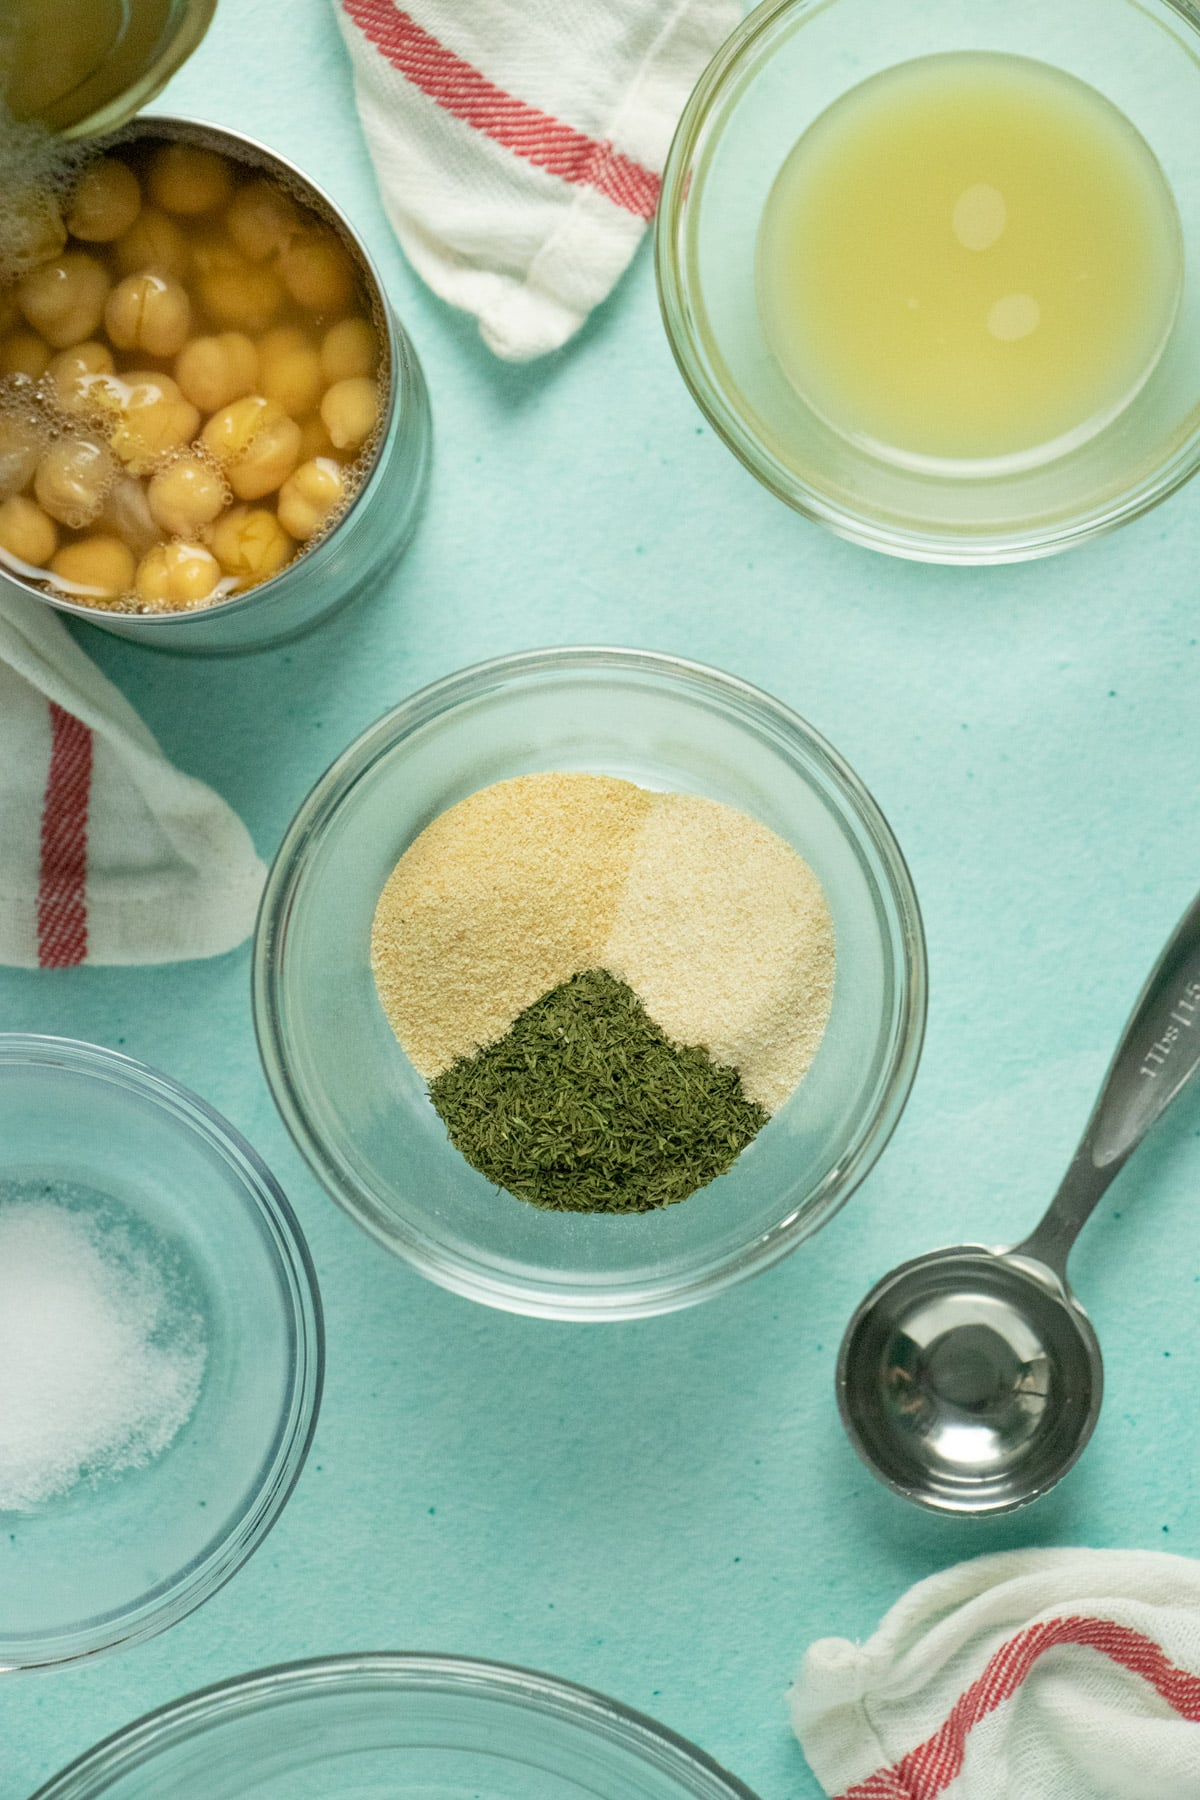 aqua table with an open can of chickpeas and bowls of spices, salt, and lemon juice and a one tablespoon measuring spoon